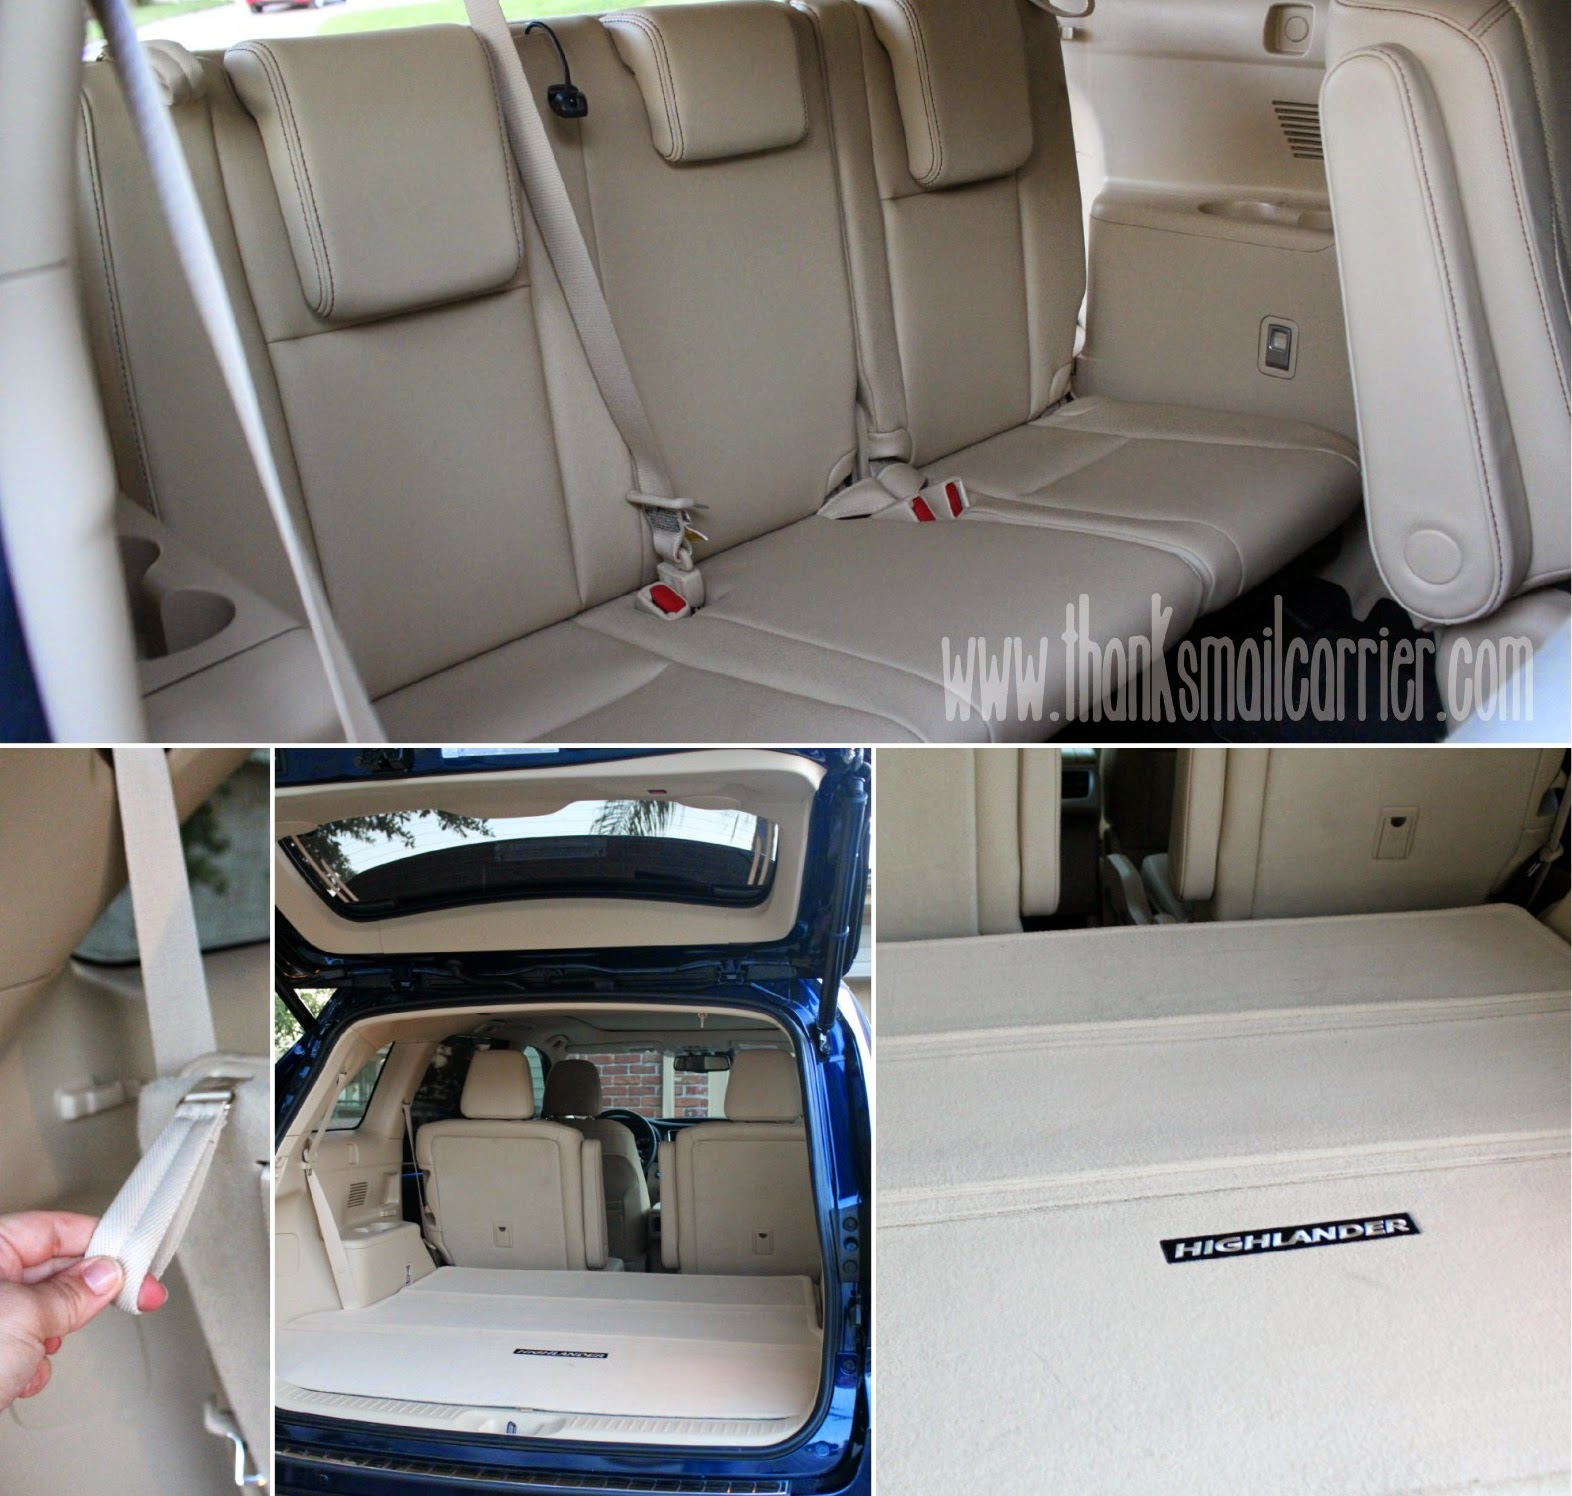 Toyota Highlander storage